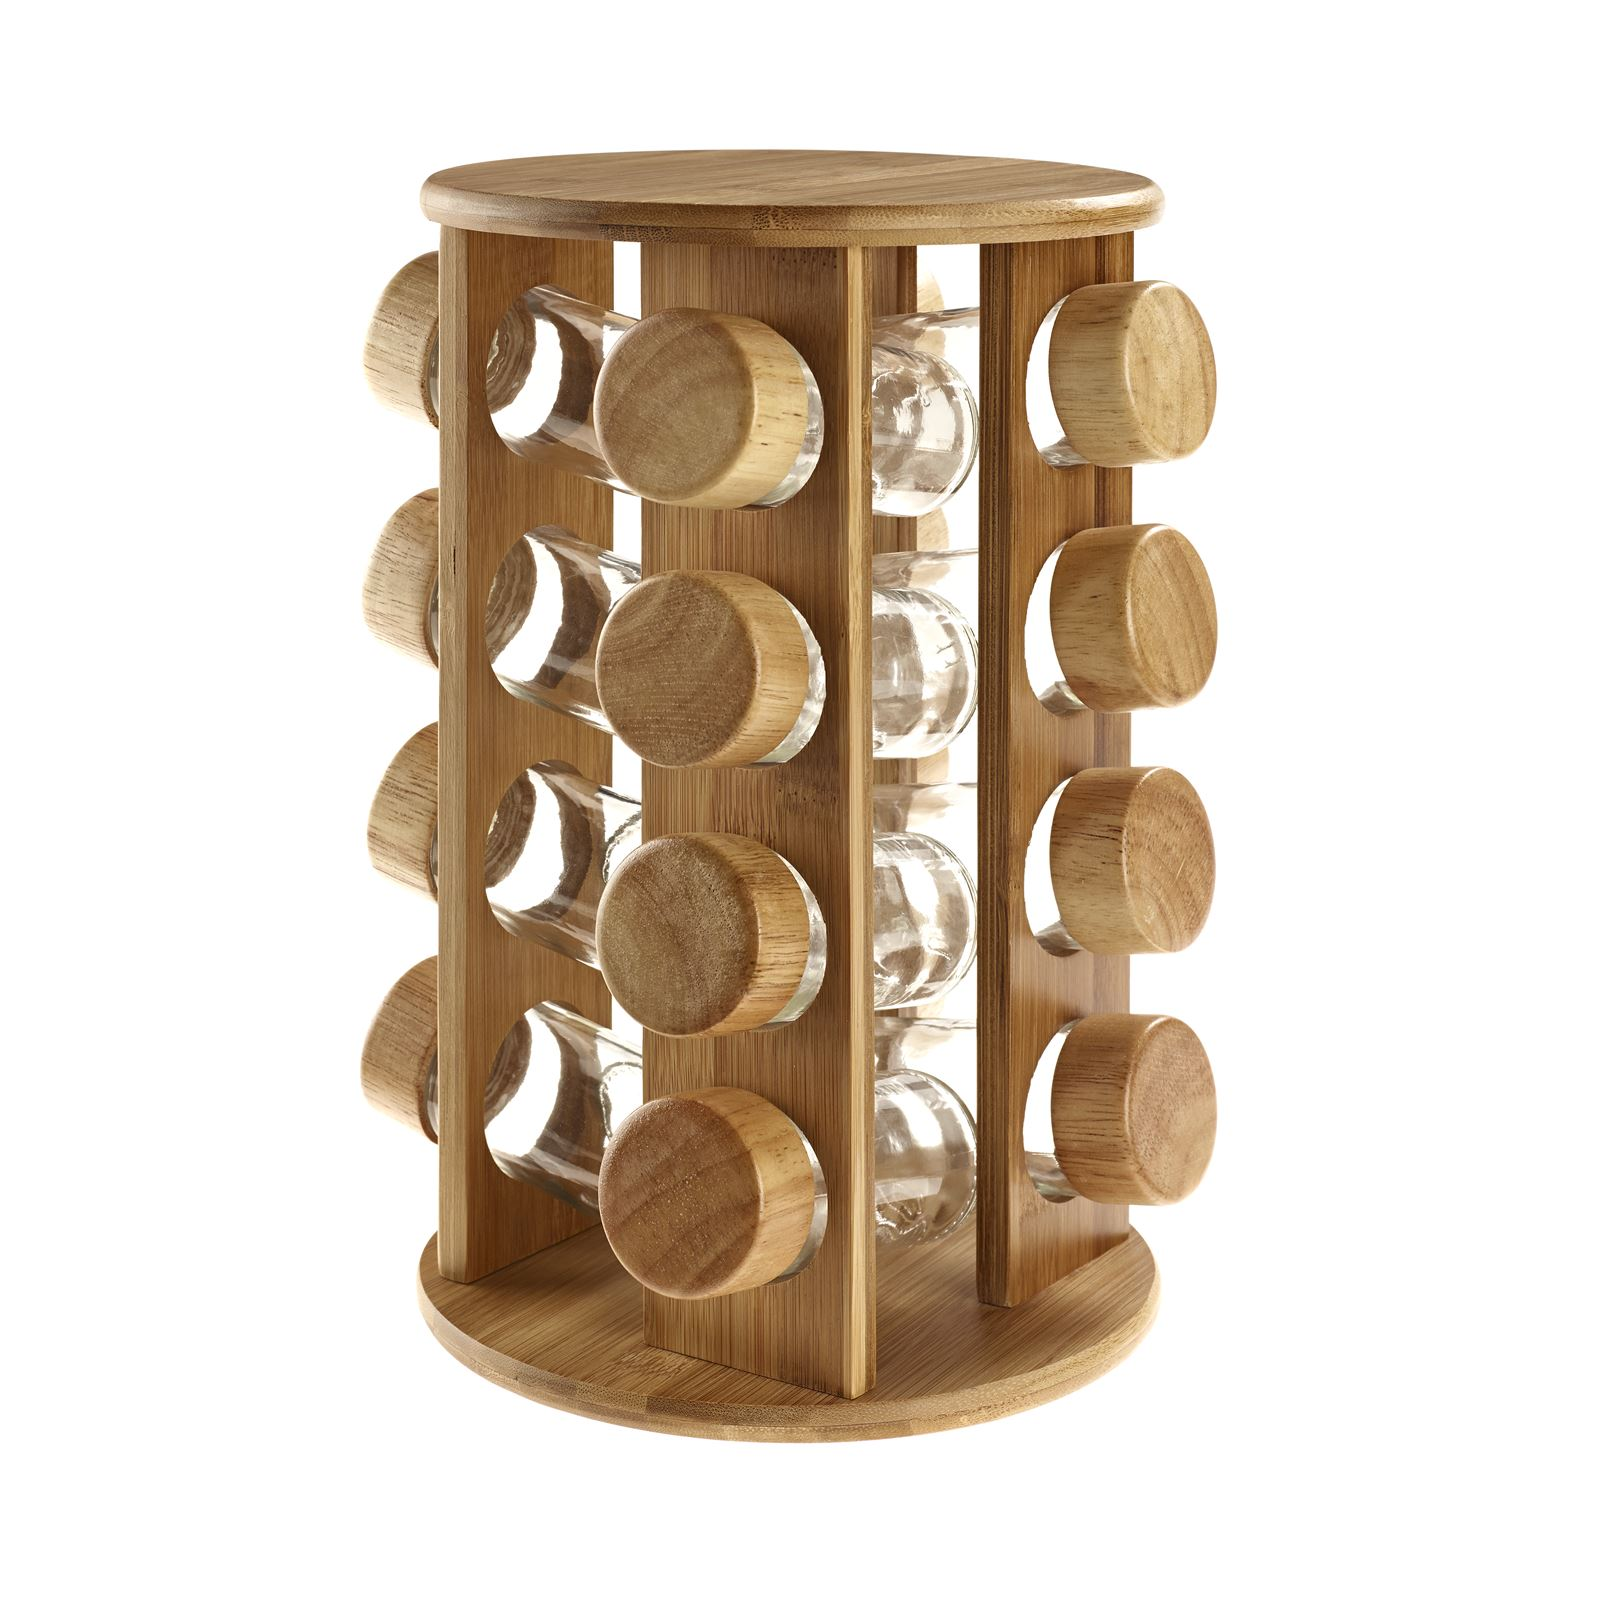 Woodworking Plans For Kitchen Spice Rack: Wooden Rotating Revolving Bamboo Spice Rack Glass Jars